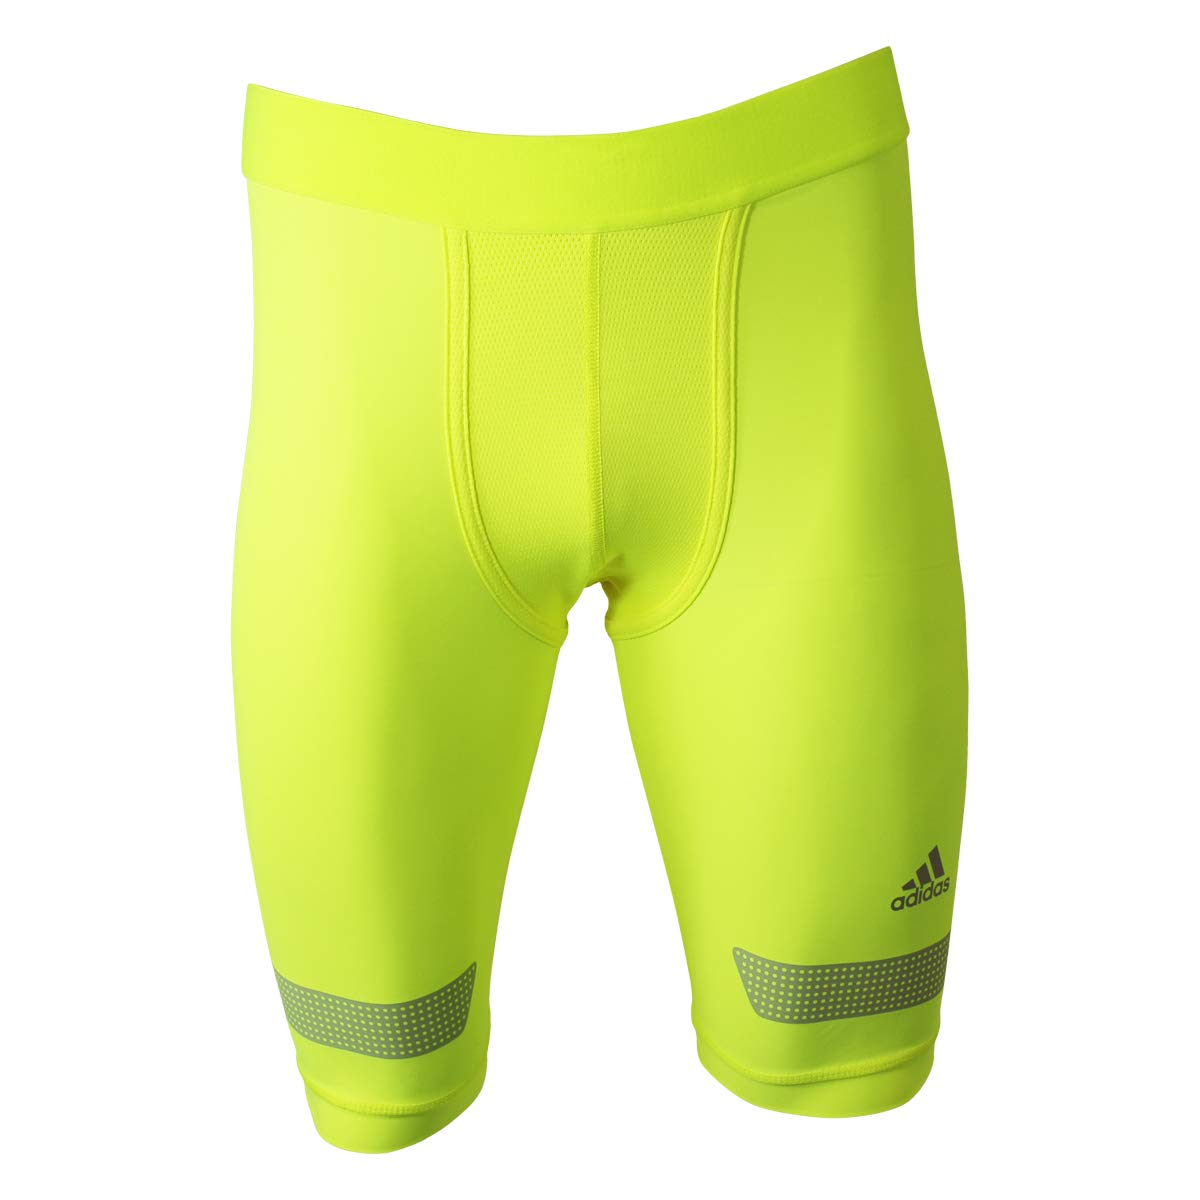 Adidas Techfit Chill Short Tights Pantaloni Corti per Uomo Techfit adidas Performance